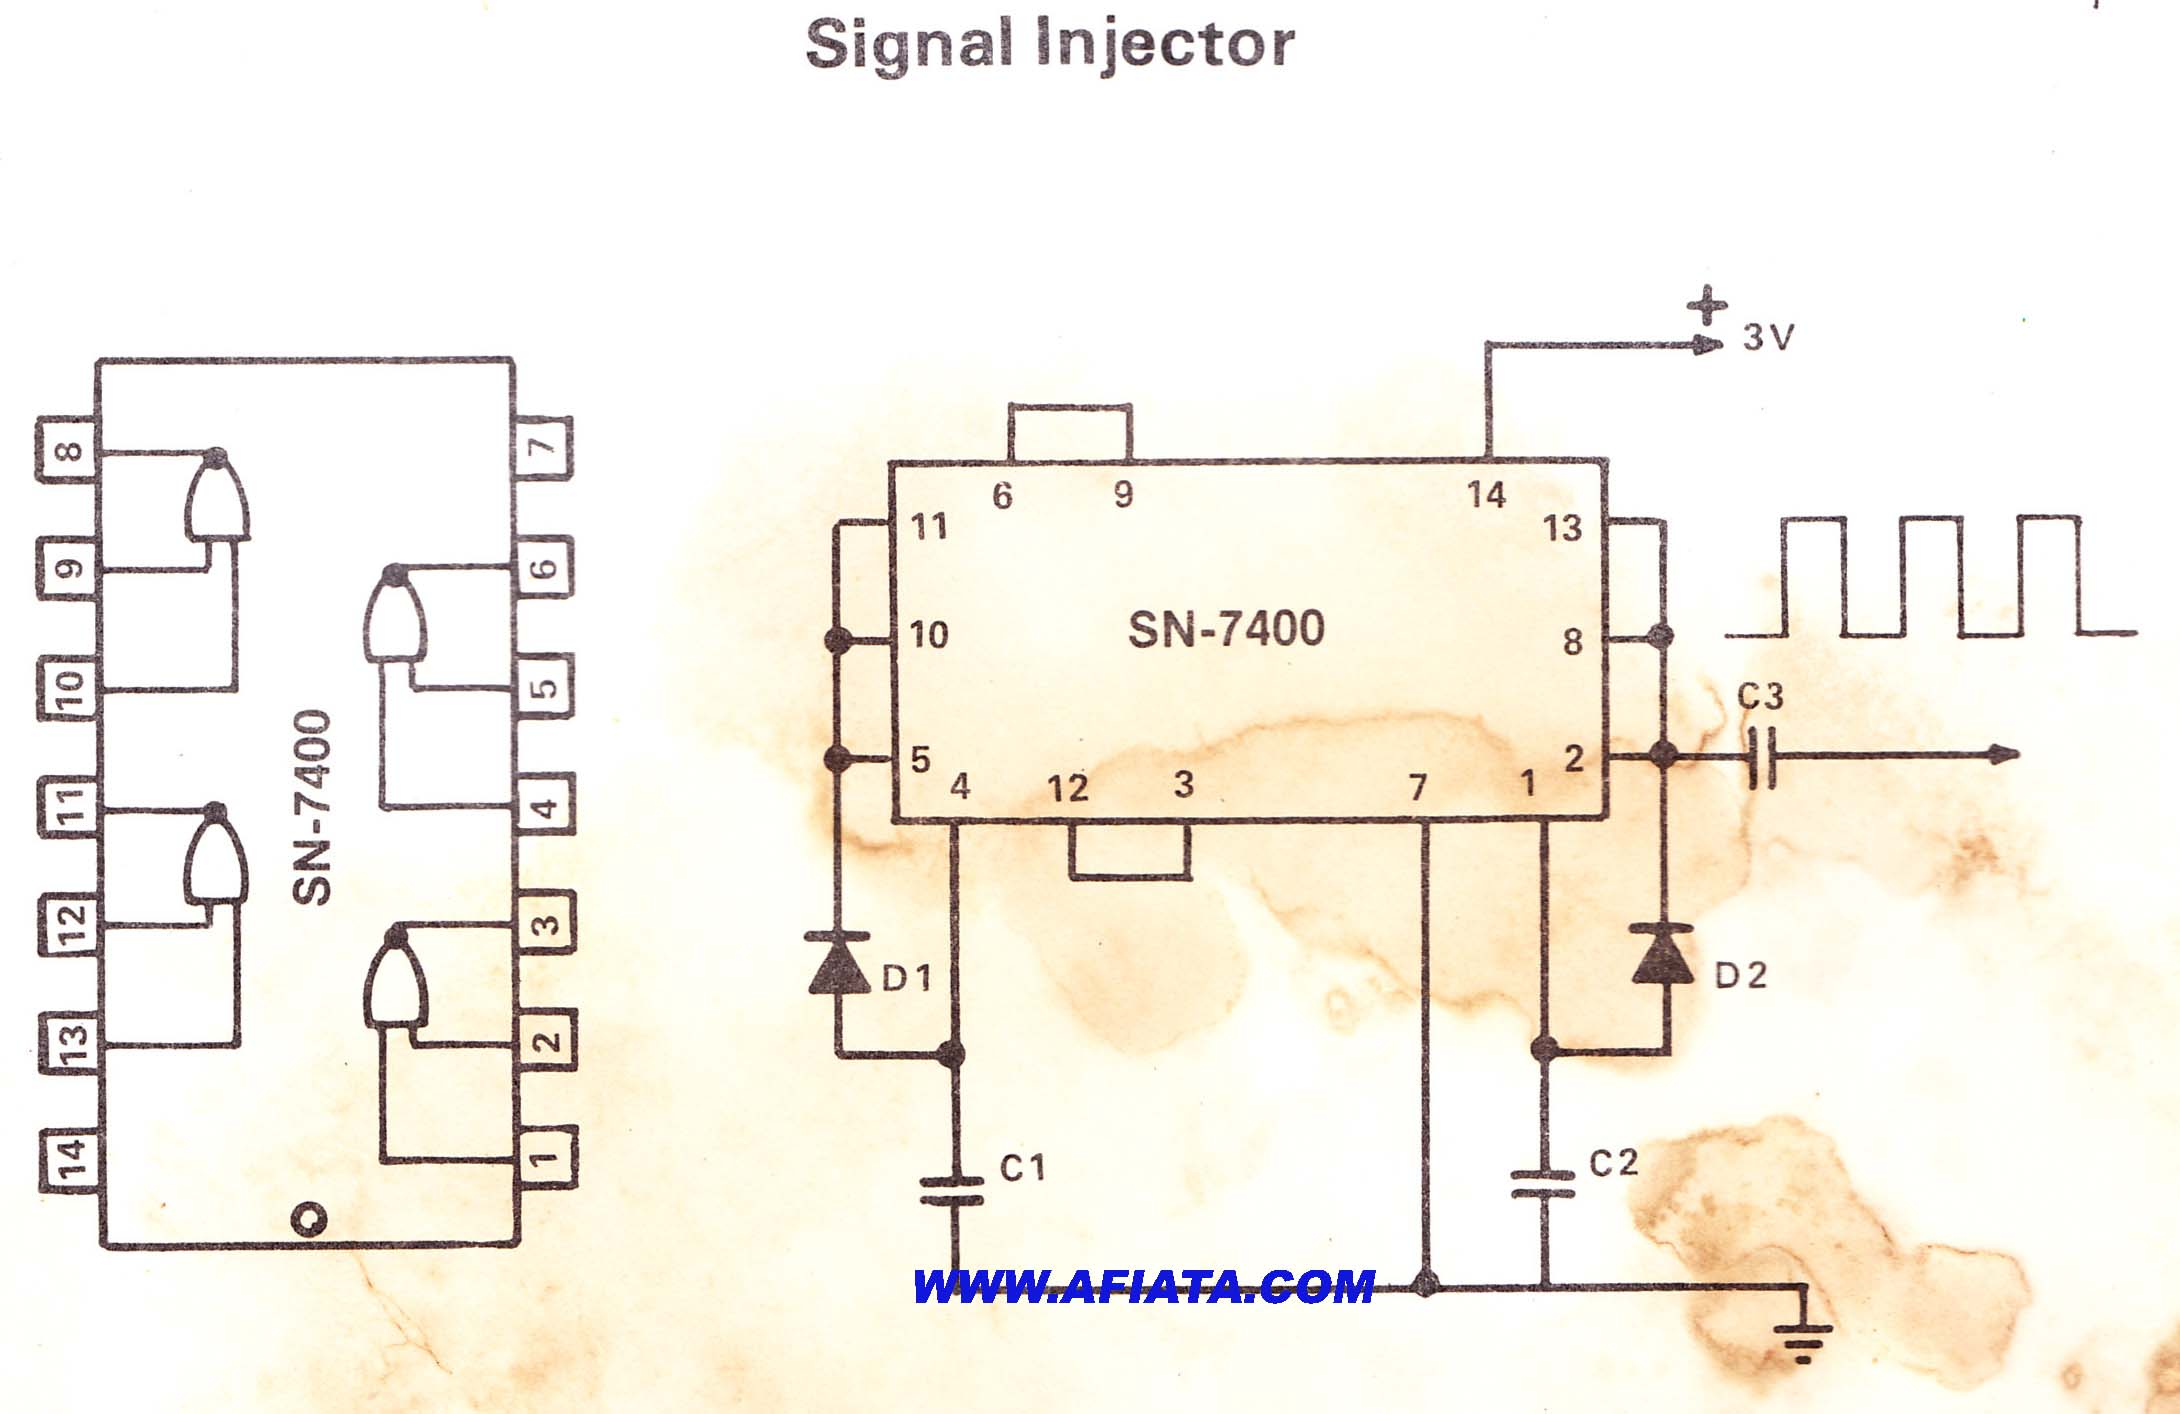 26 Gauge Wire >> signal generator | Electronic Circuit Diagram and Layout